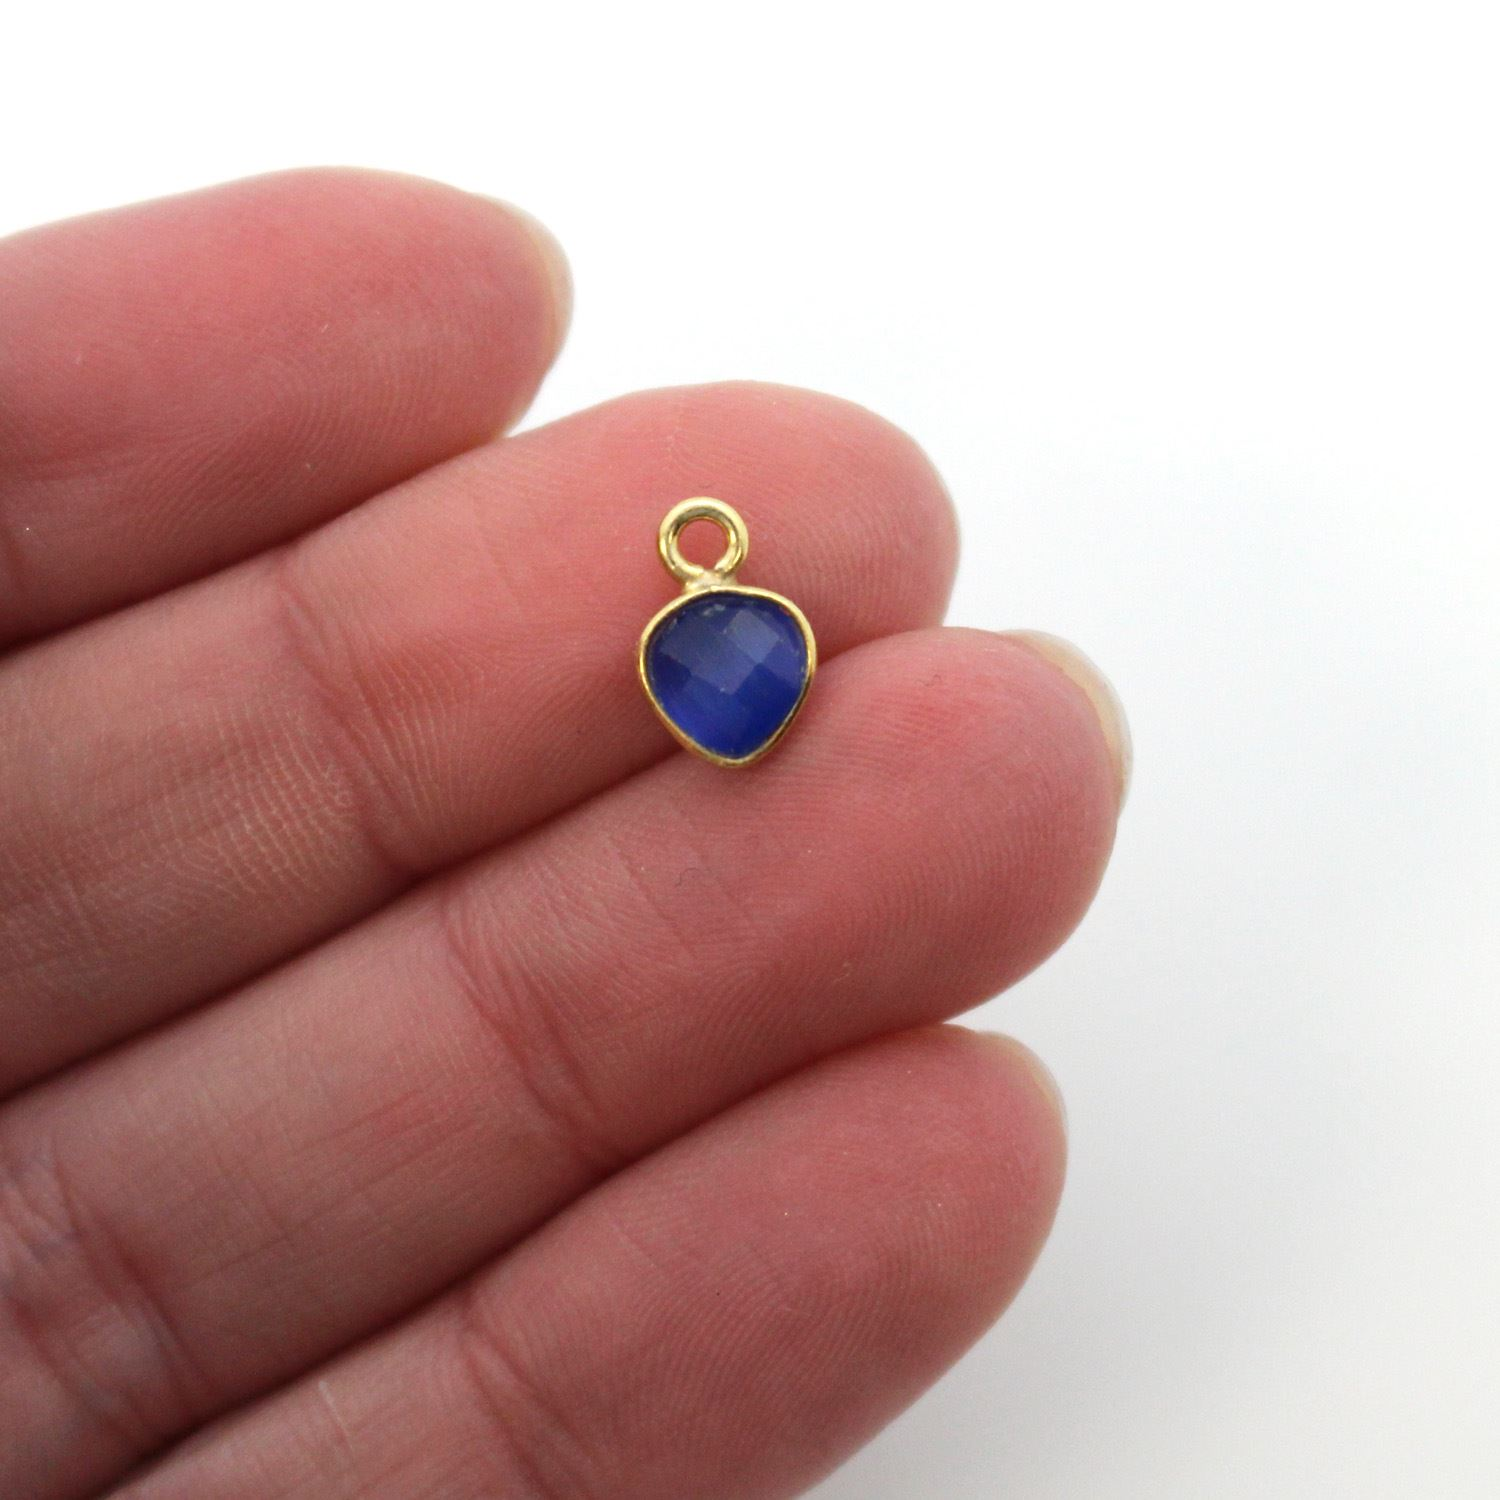 Bezel Gem Pendant-Gold Plated Sterling Silver- 10x7mm Tiny Heart Shape- Blue Monalisa (sold per 2 pieces)